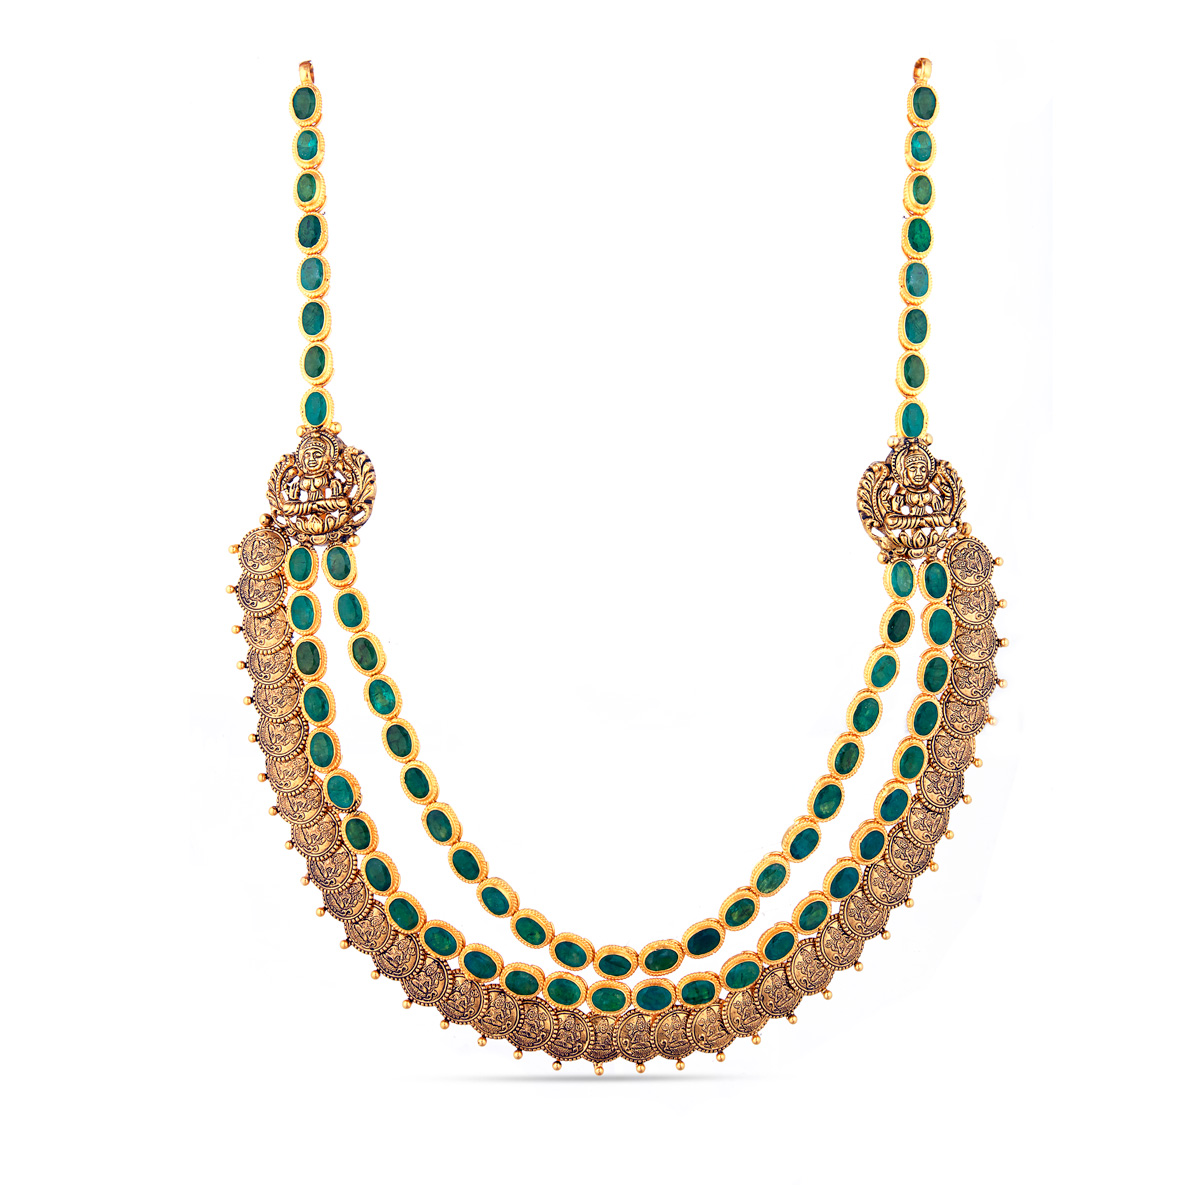 Double Strand Emerald necklace